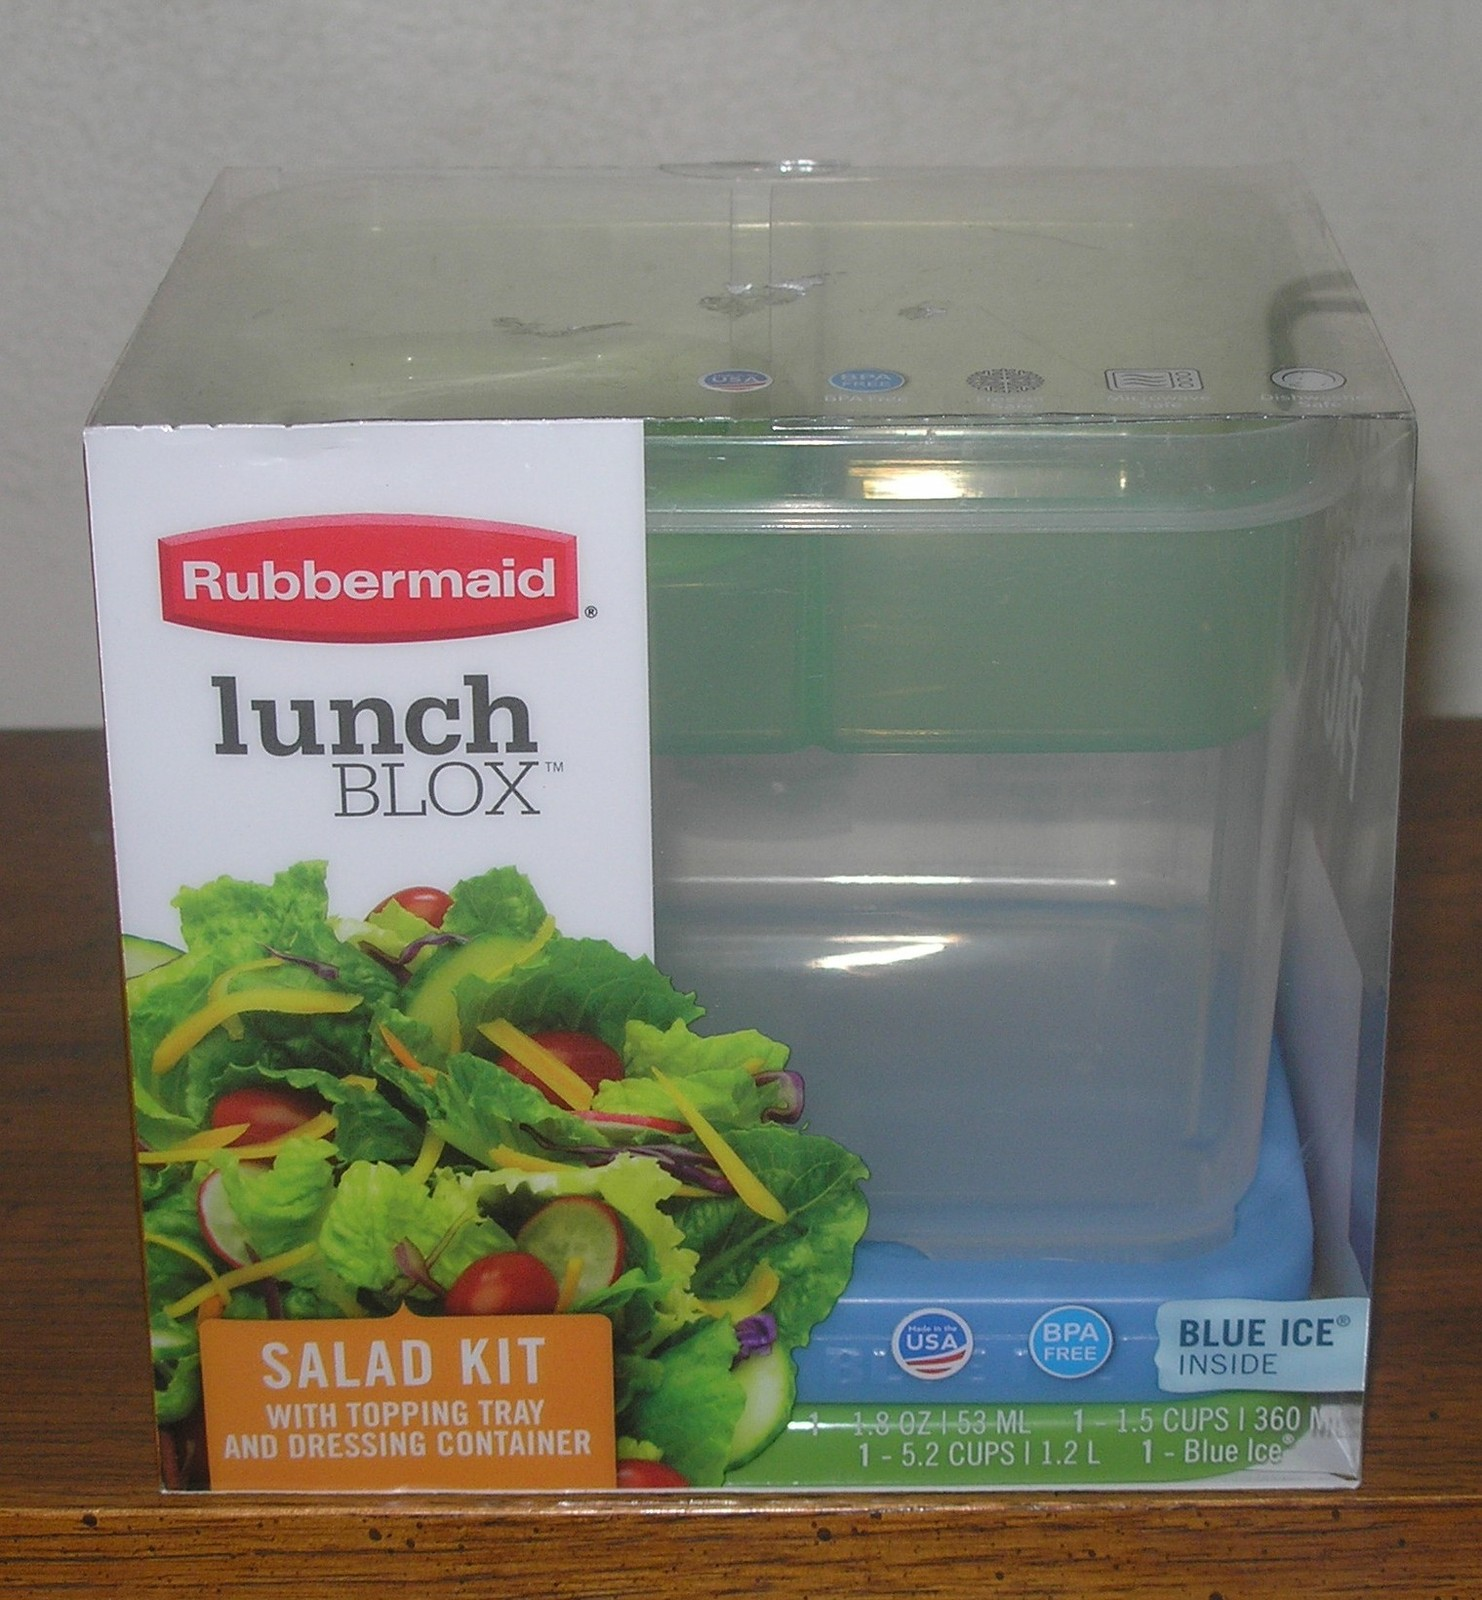 New Rubbermaid Lunch Blox Salad Kit Food Storage Containers